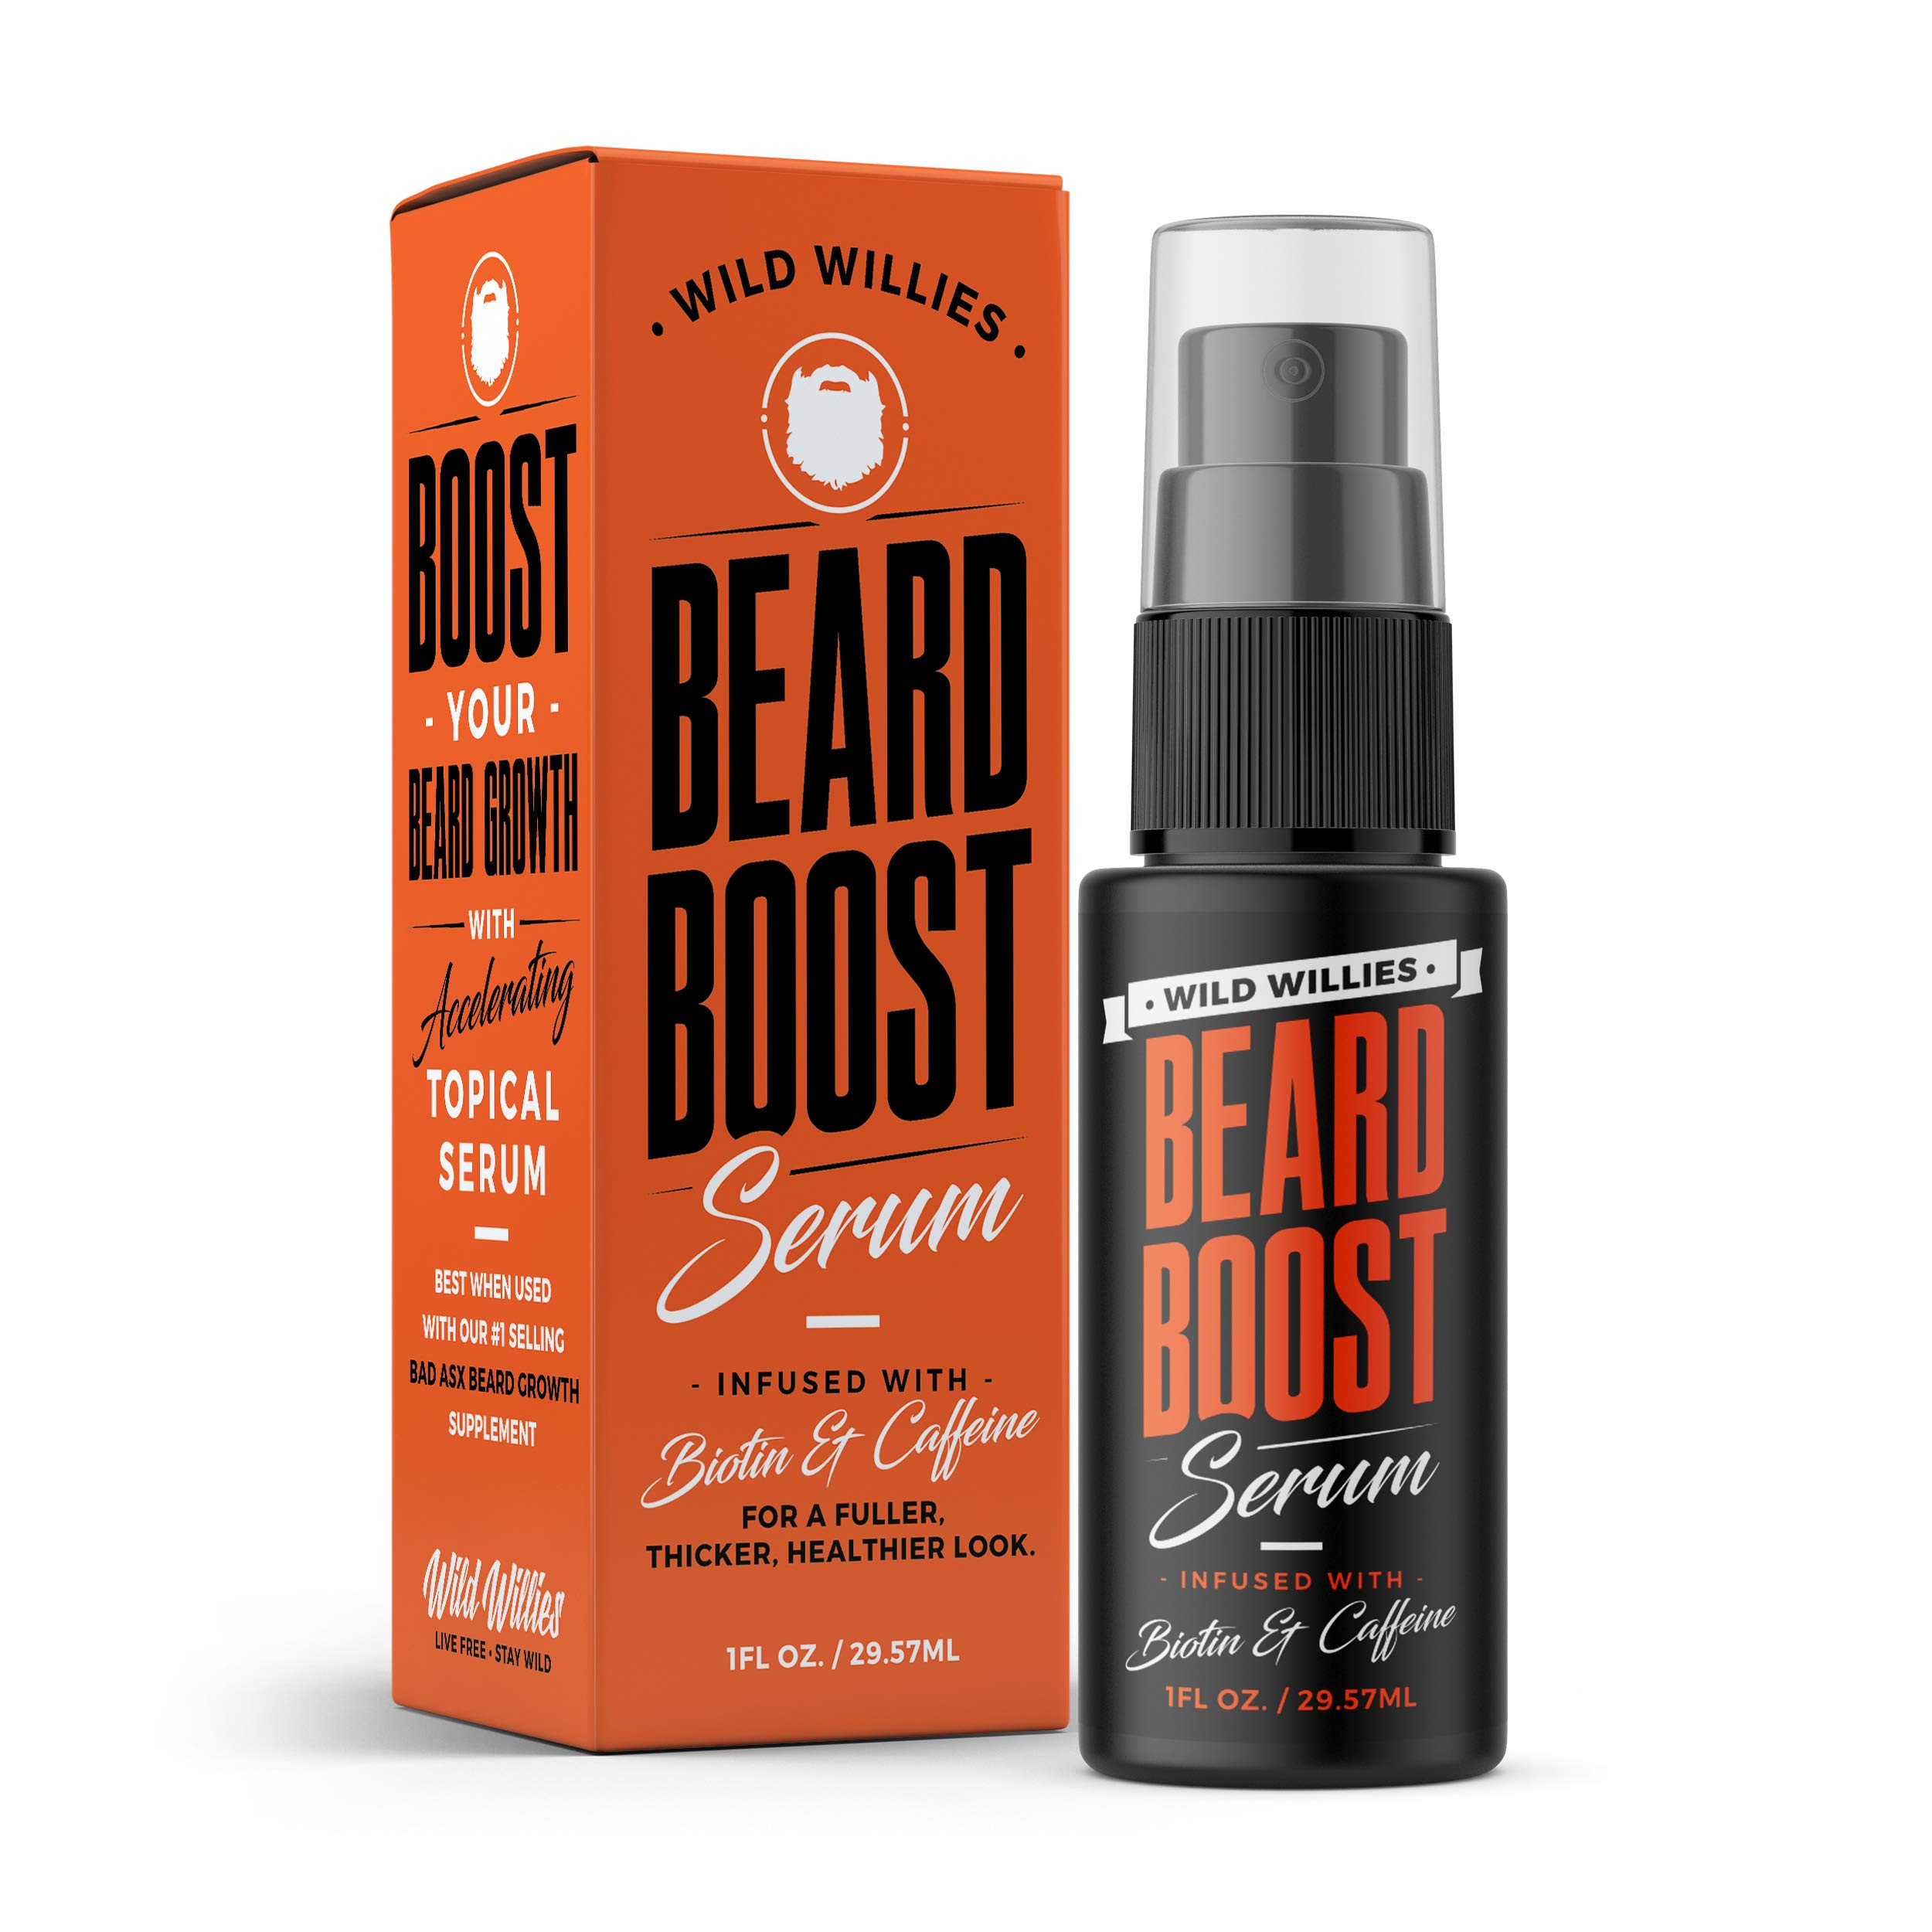 Beard Growth Serum with Biotin & Caffeine – Naturally Powerful, Full, Thick, Masculine Facial Hair Treatment infused with Biotin and Caffeine for Men by Wild Willies